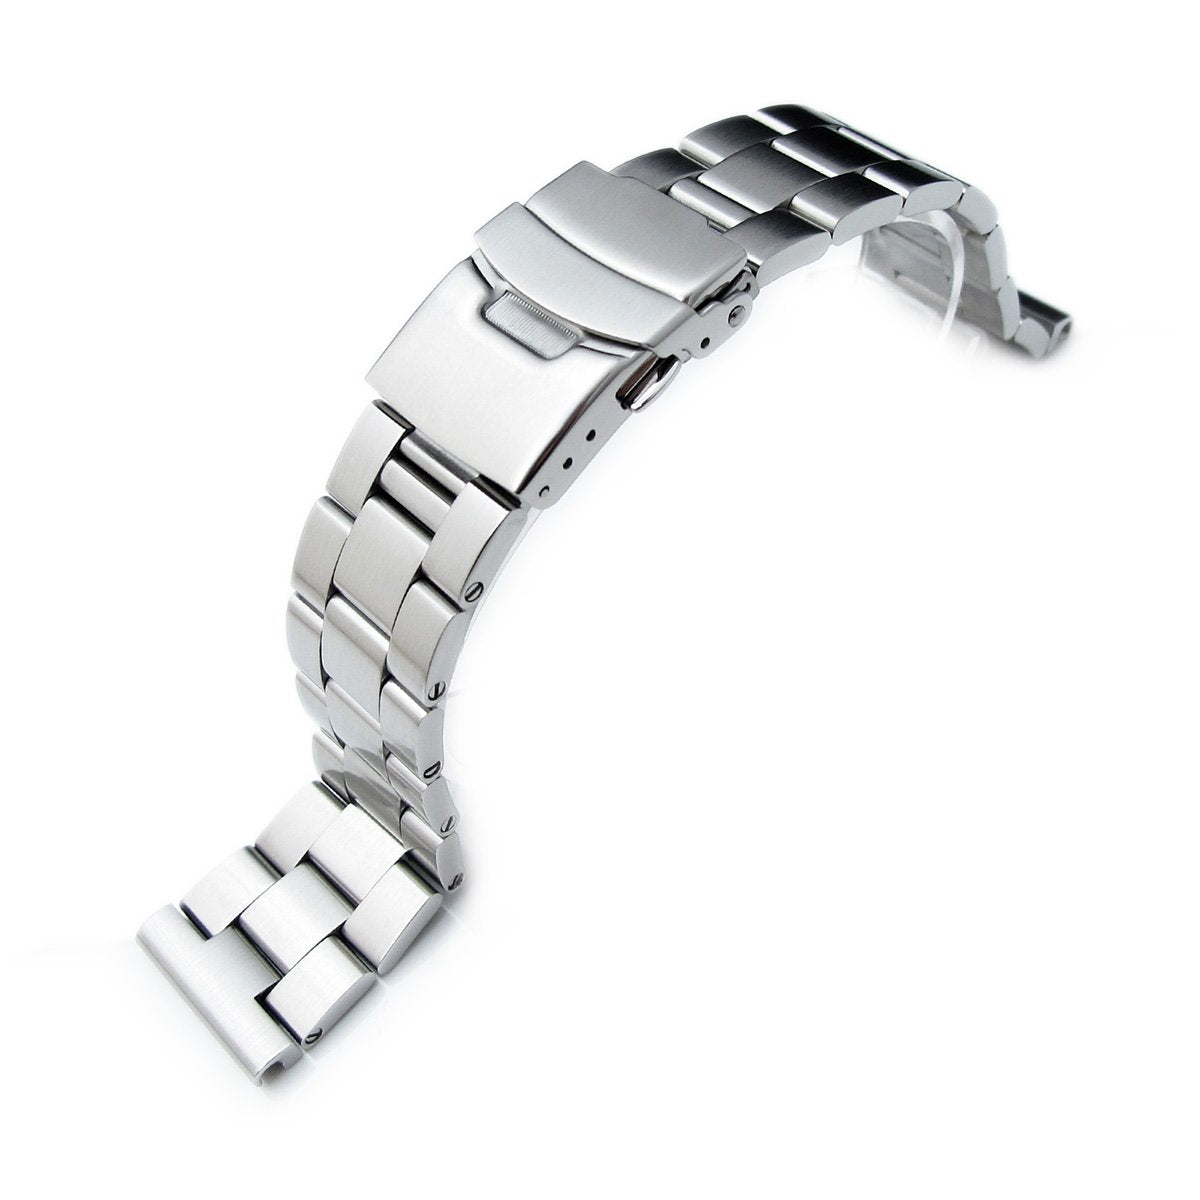 22mm Super-O Boyer 316L Solid Stainless Steel Straight End Watch Band Strapcode Watch Bands